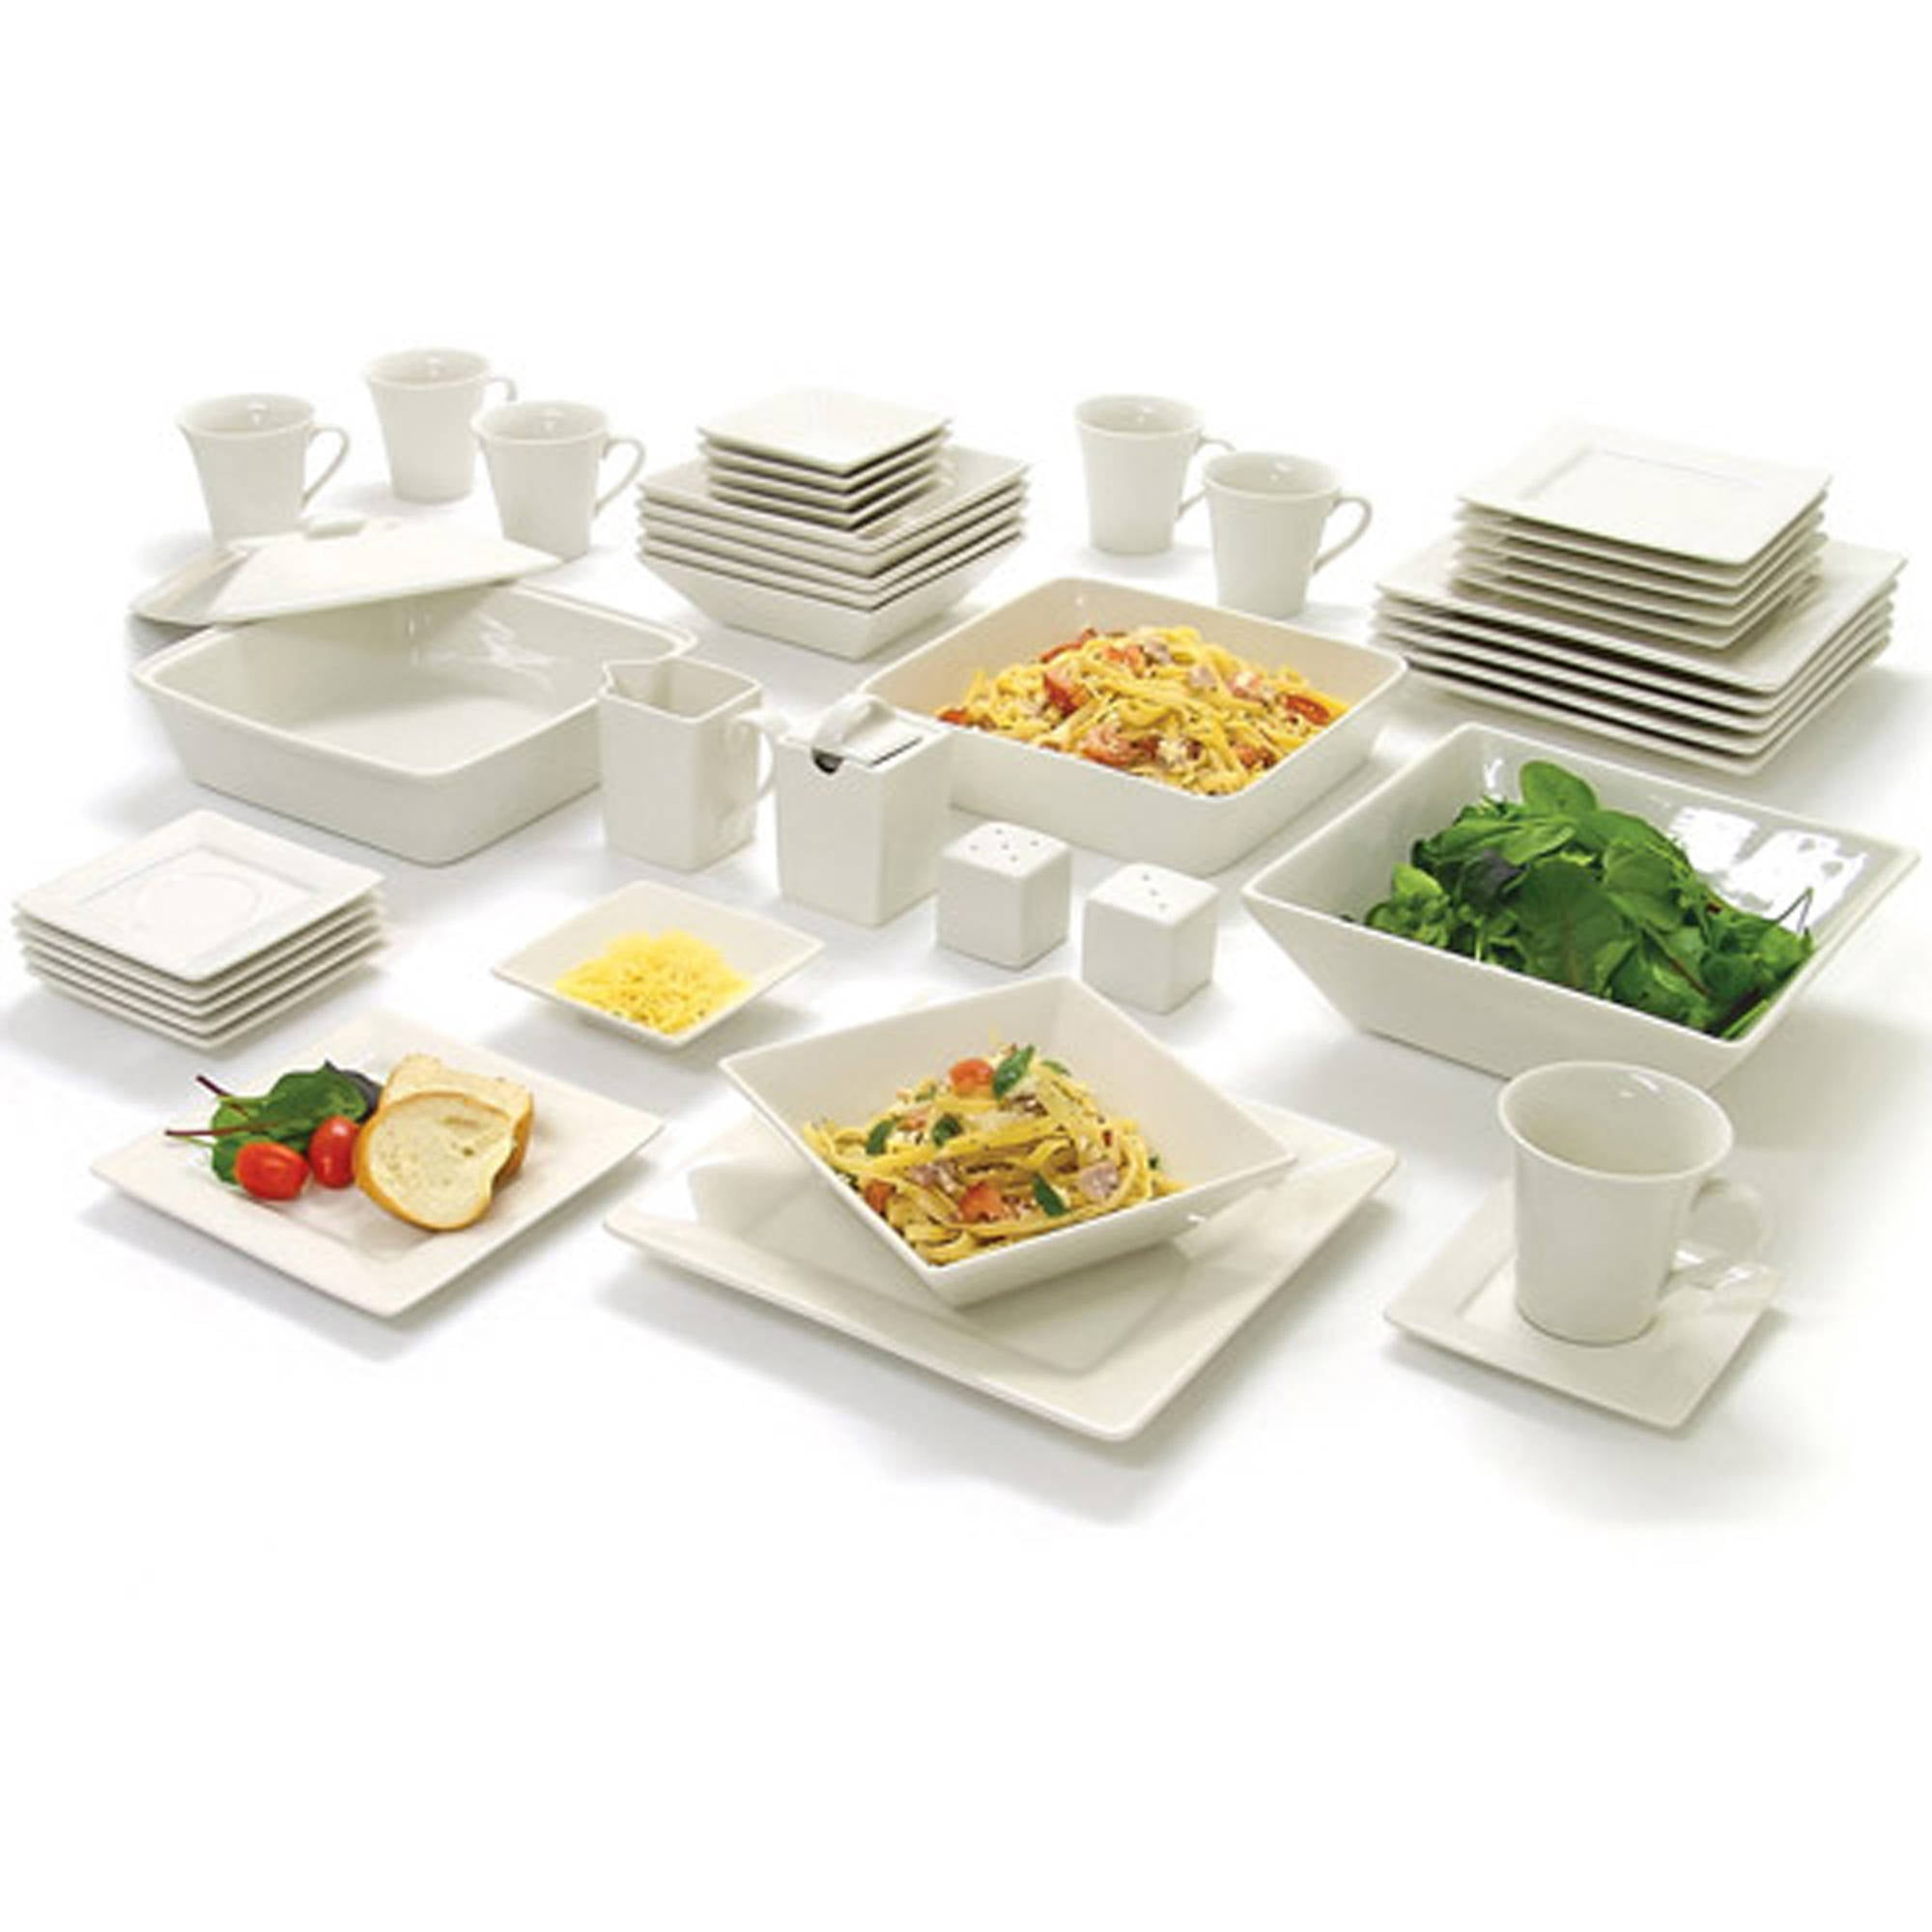 10 Strawberry Street Nova Square Banquet 45 Piece Dinnerware Set    Walmart.com